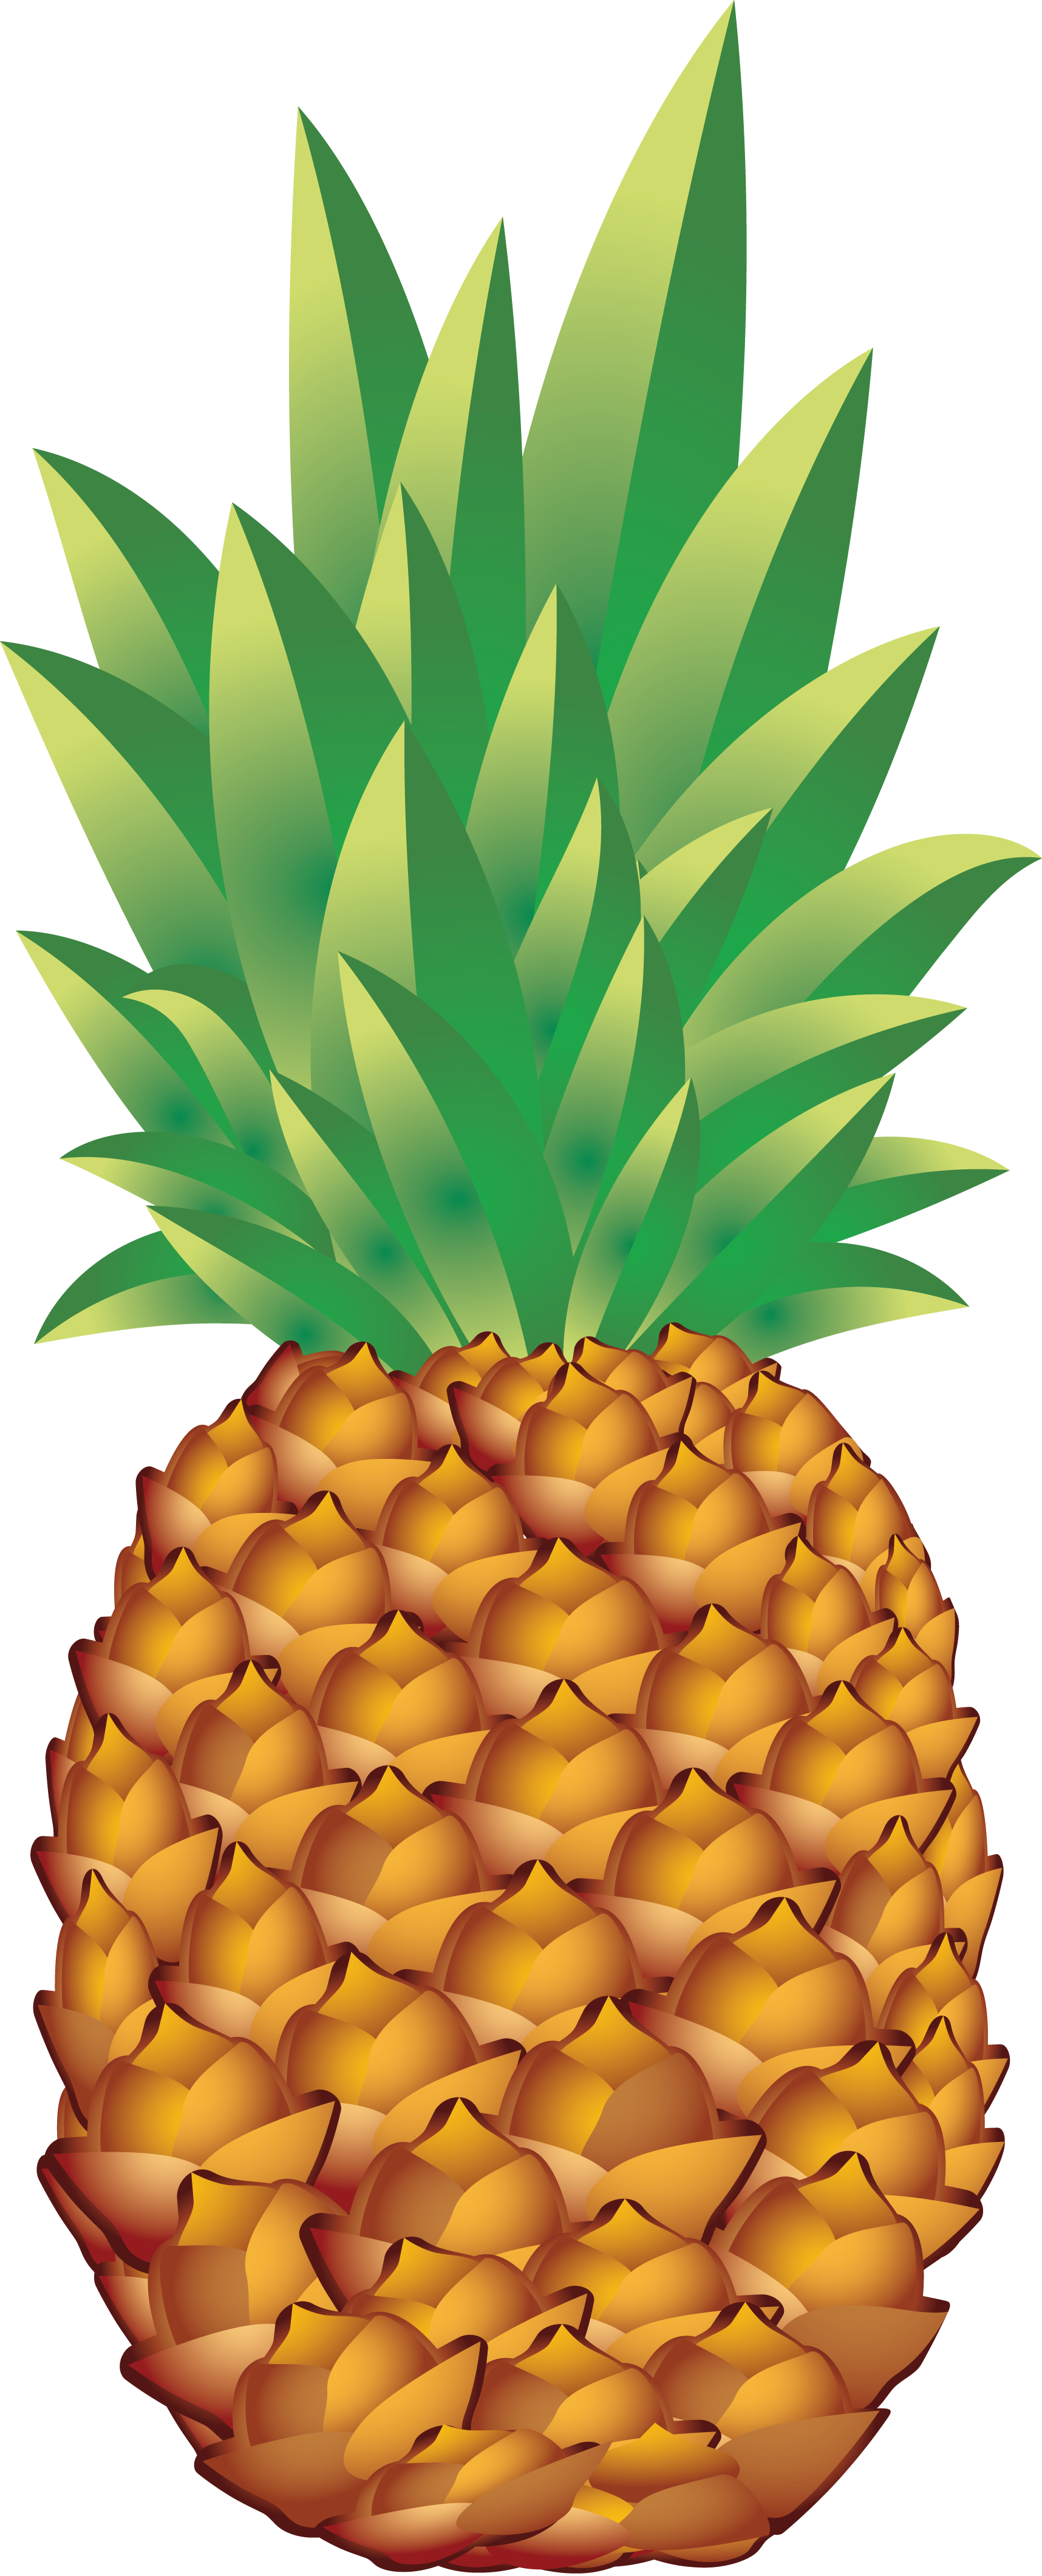 Pineapple clipart no background